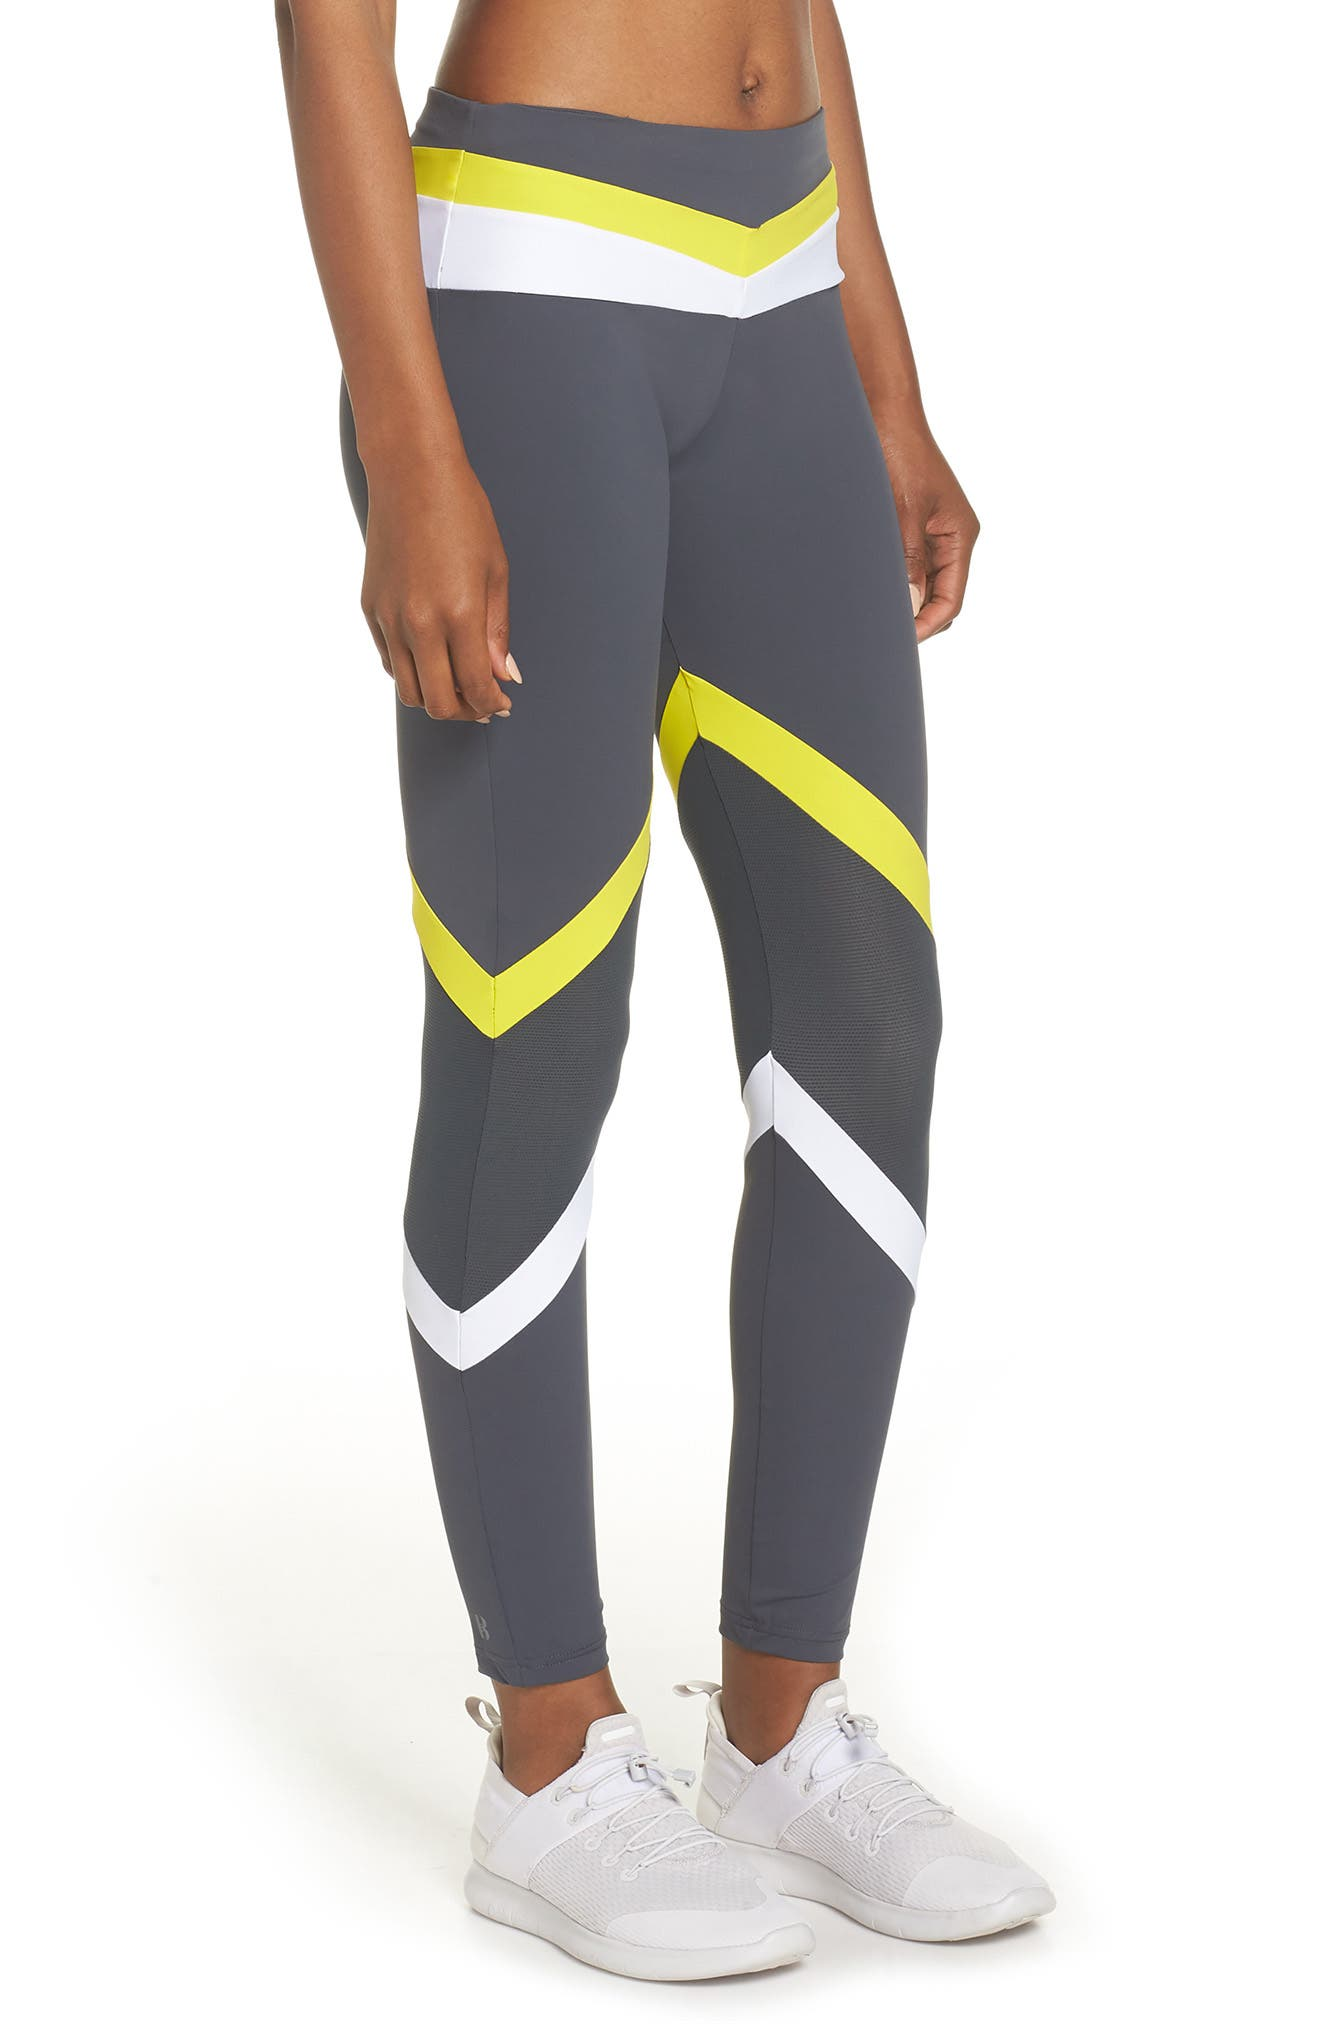 BoomBoom Athletica Tricolor Leggings,                             Alternate thumbnail 3, color,                             GREY/ WHITE/ YELLOW